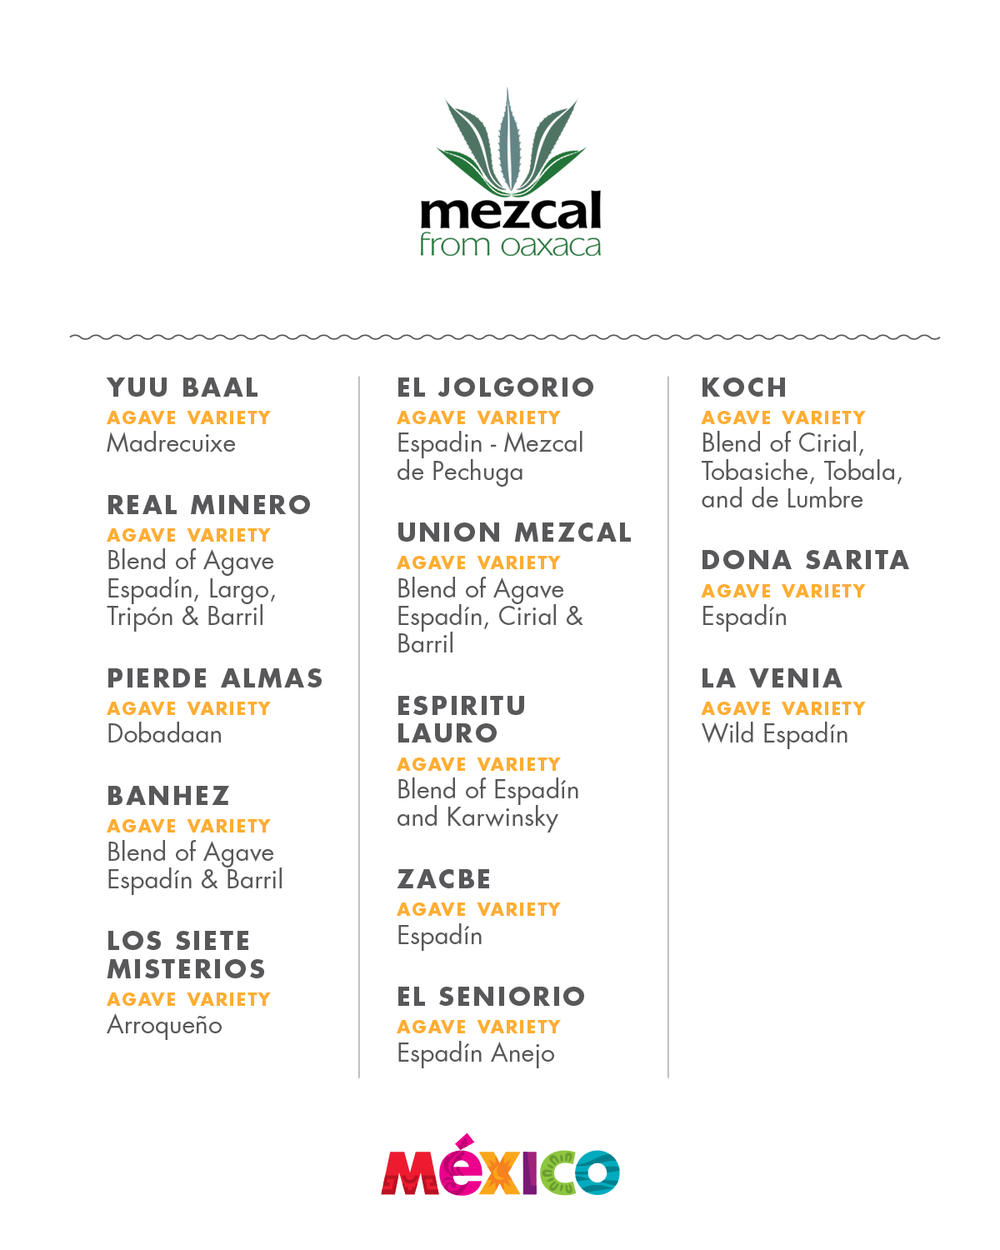 Participant mezcal brands and its varieties